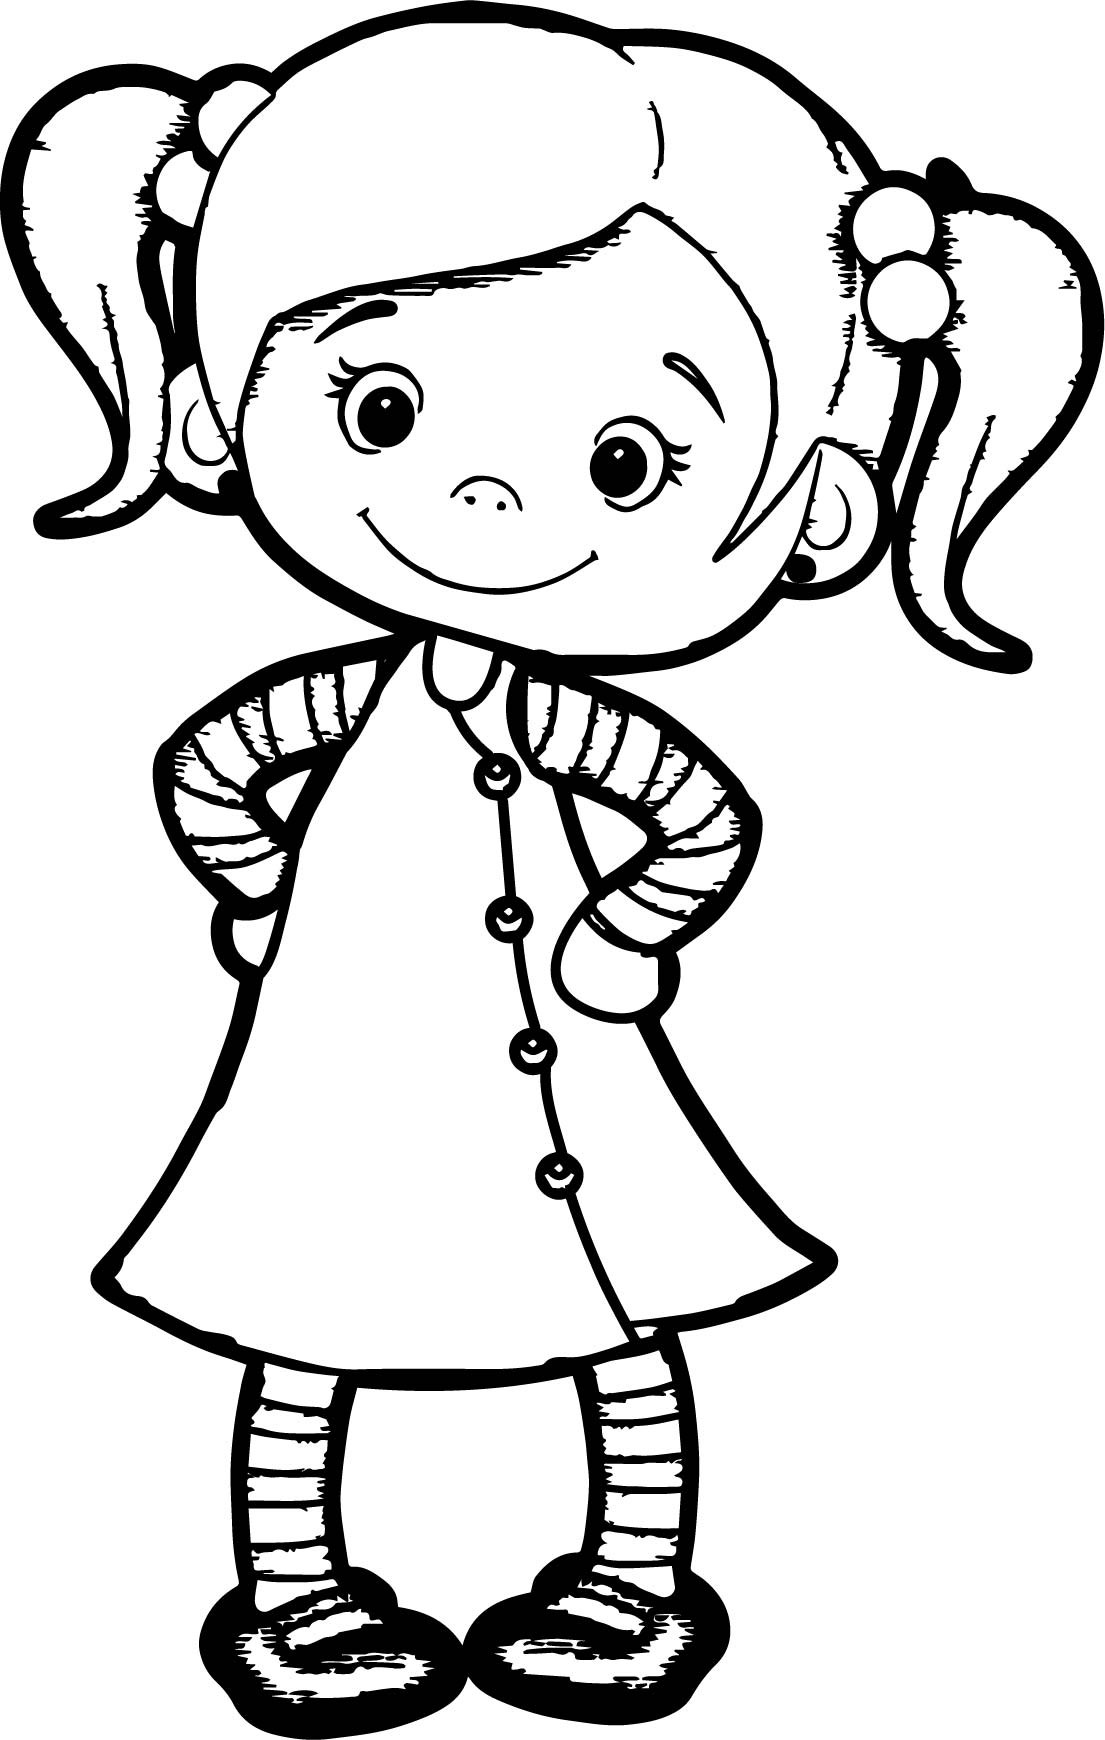 colour in pictures for girls coloring pages for girls best coloring pages for kids colour pictures for girls in